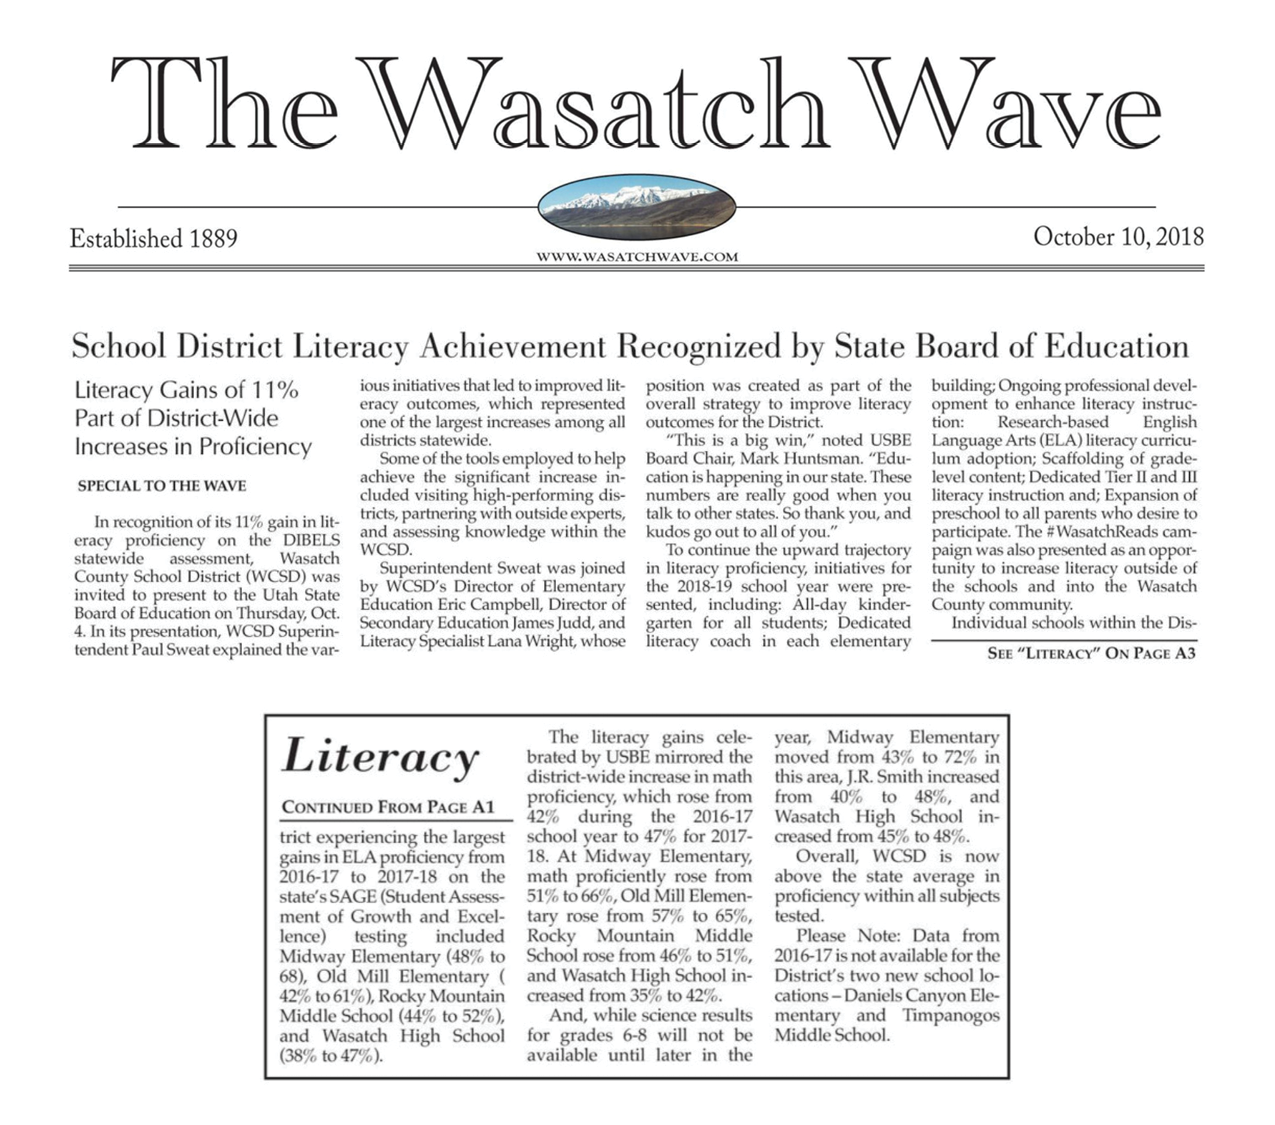 Wasatch Wave Literacy Article